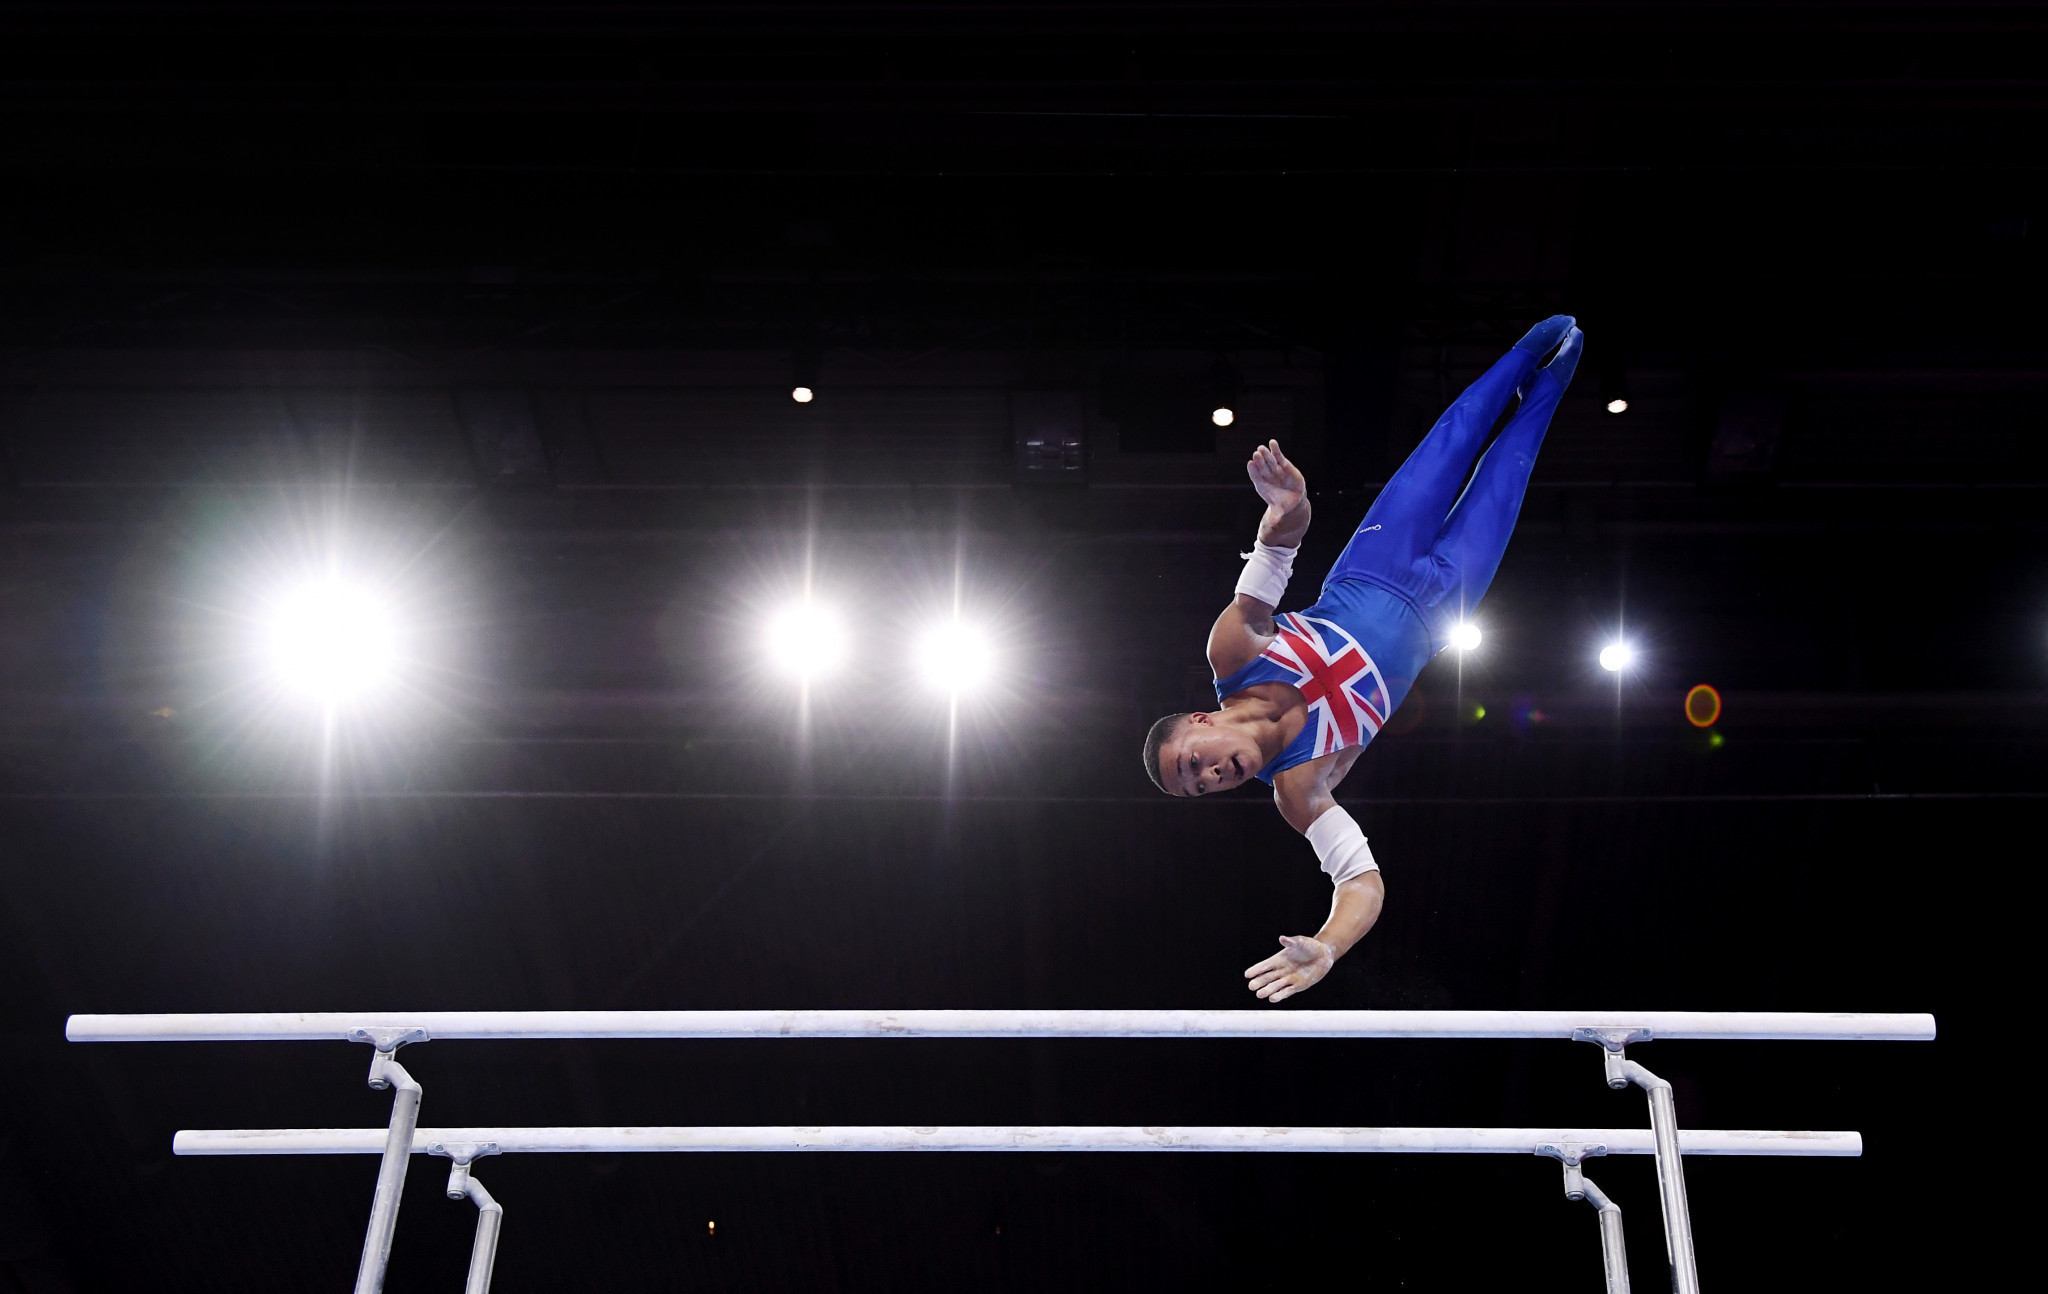 European Artistic Gymnastics Championships moved locations due to pandemic